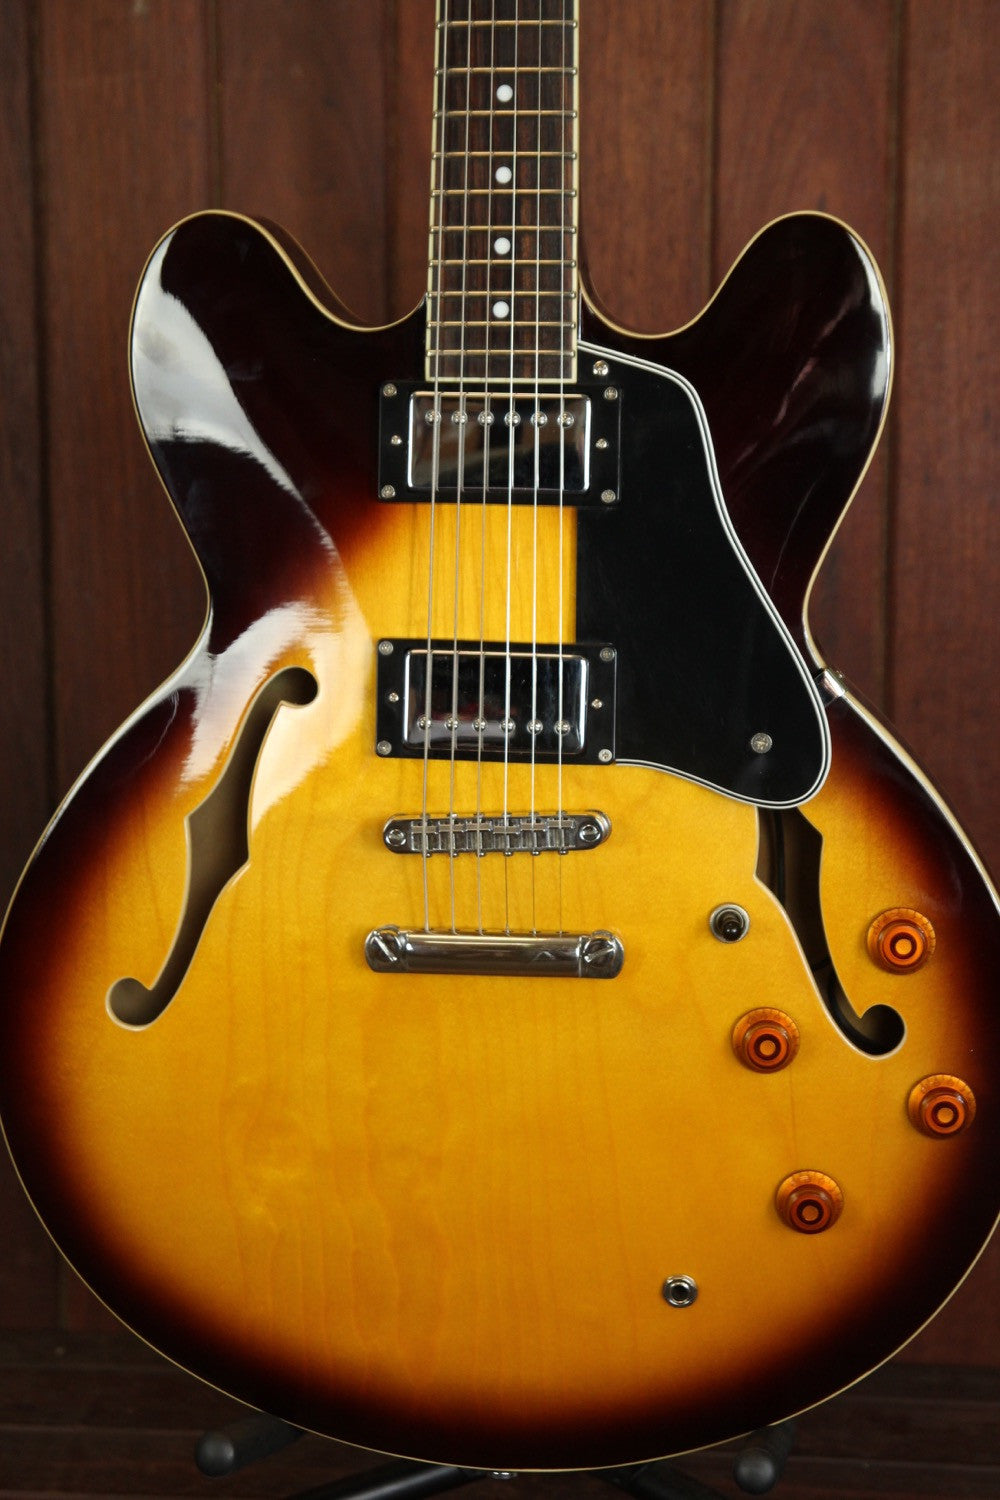 *NEW ARRIVAL* TOKAI ES-60 Es Style Semi-Hollowbody Vintage Sunburst Pre-Owned